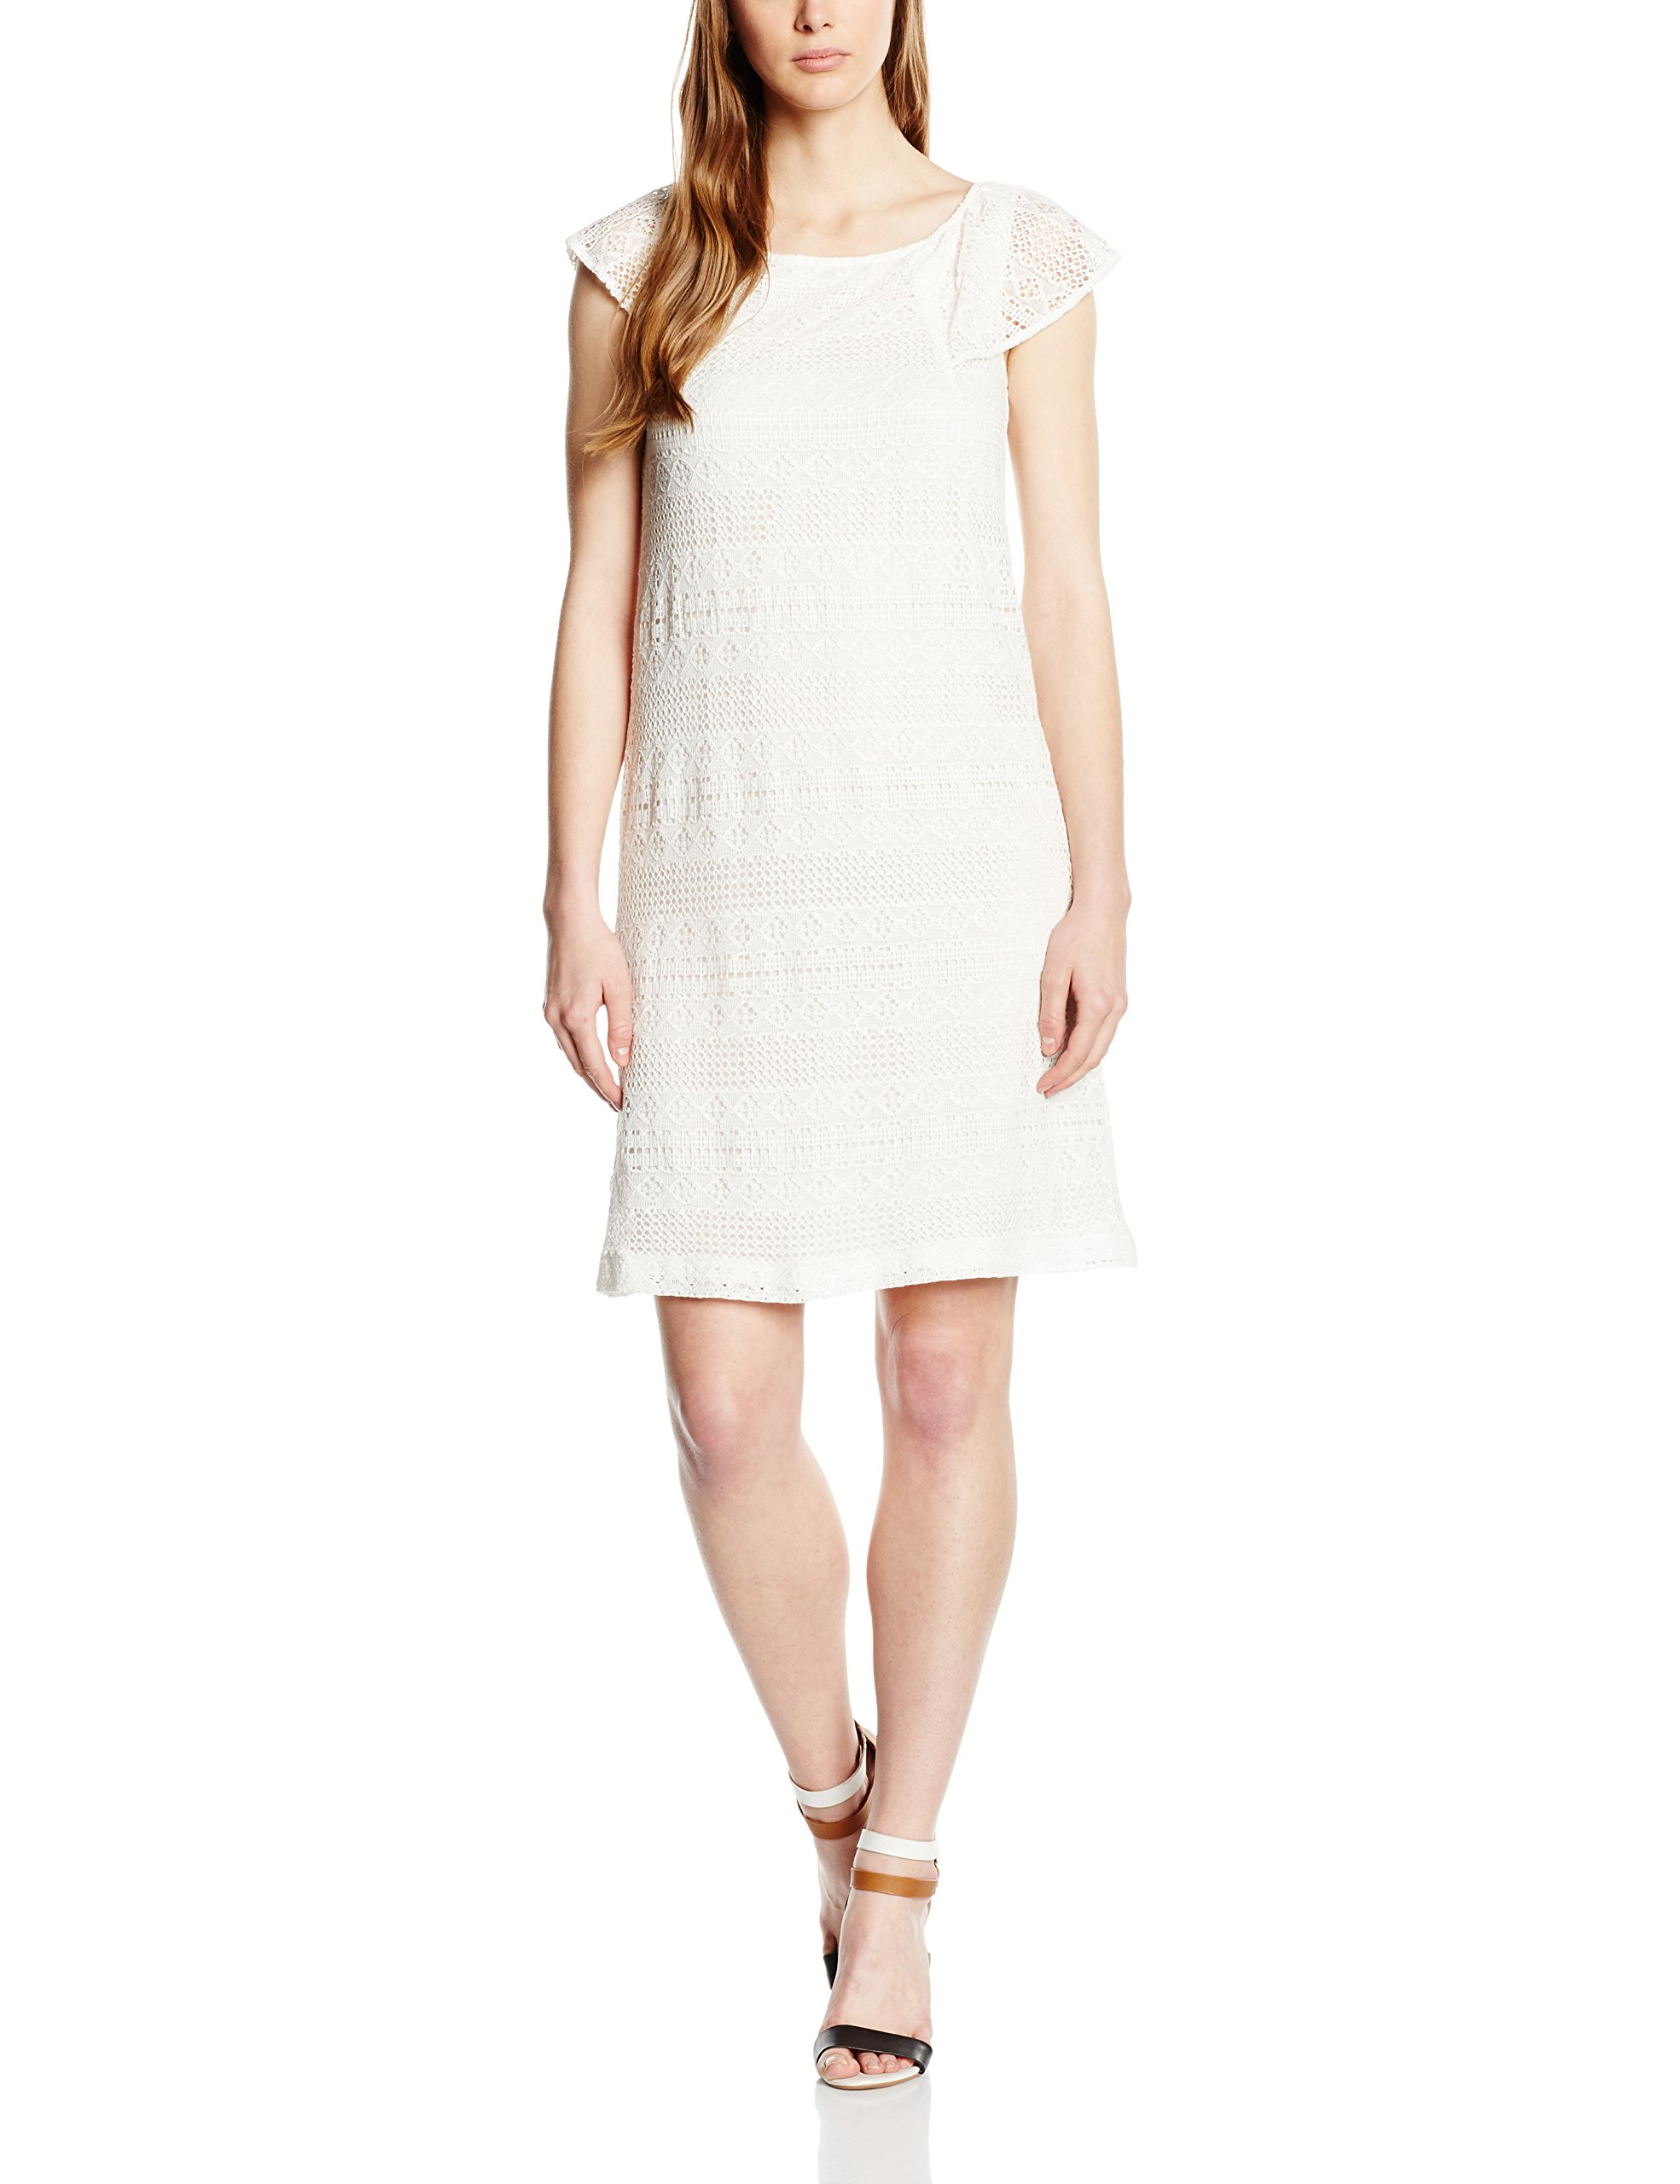 Esprit Uni Écruoff WhiteFr38taille 046ee1e009Robe Femme Courtes Manches FabricantDe36 dCorxeWB